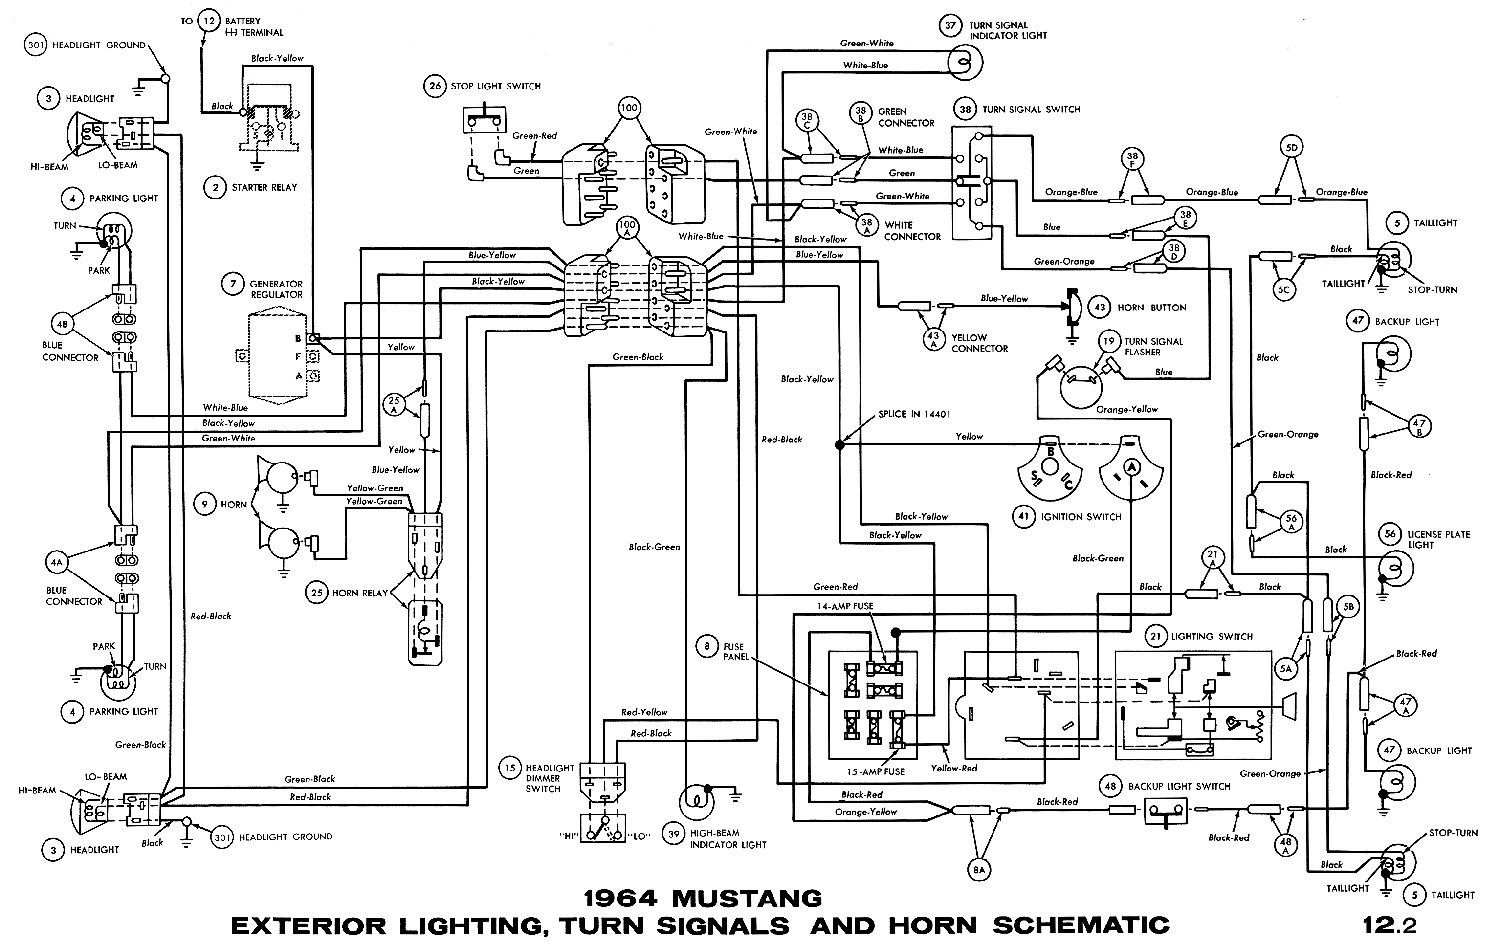 Awesome 1966 Ford Mustang Wiring Diagram In 2020 1965 Mustang 1966 Ford Mustang Mustang